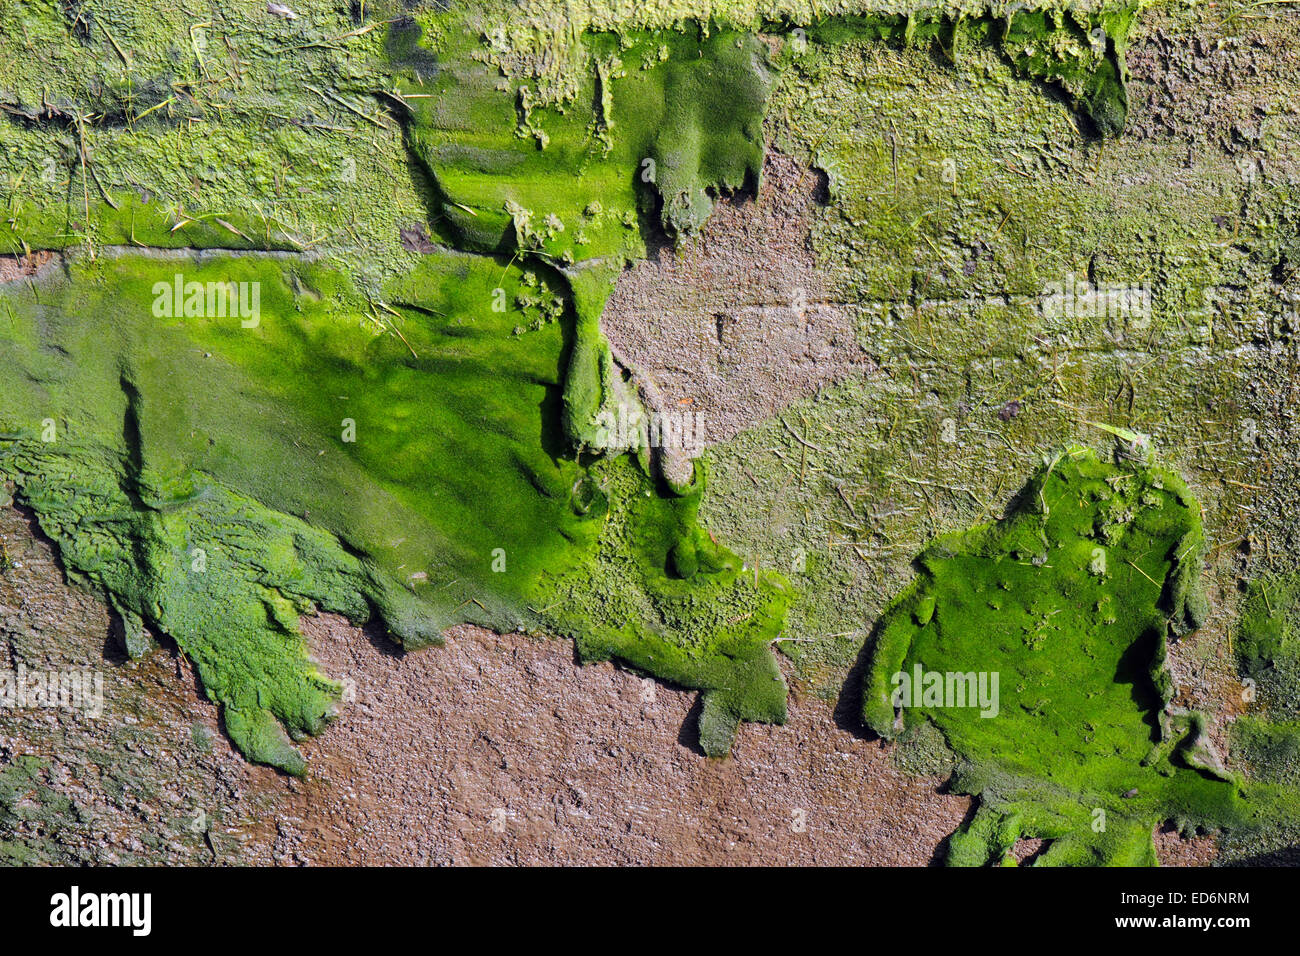 Damp Mould High Resolution Stock Photography And Images Alamy